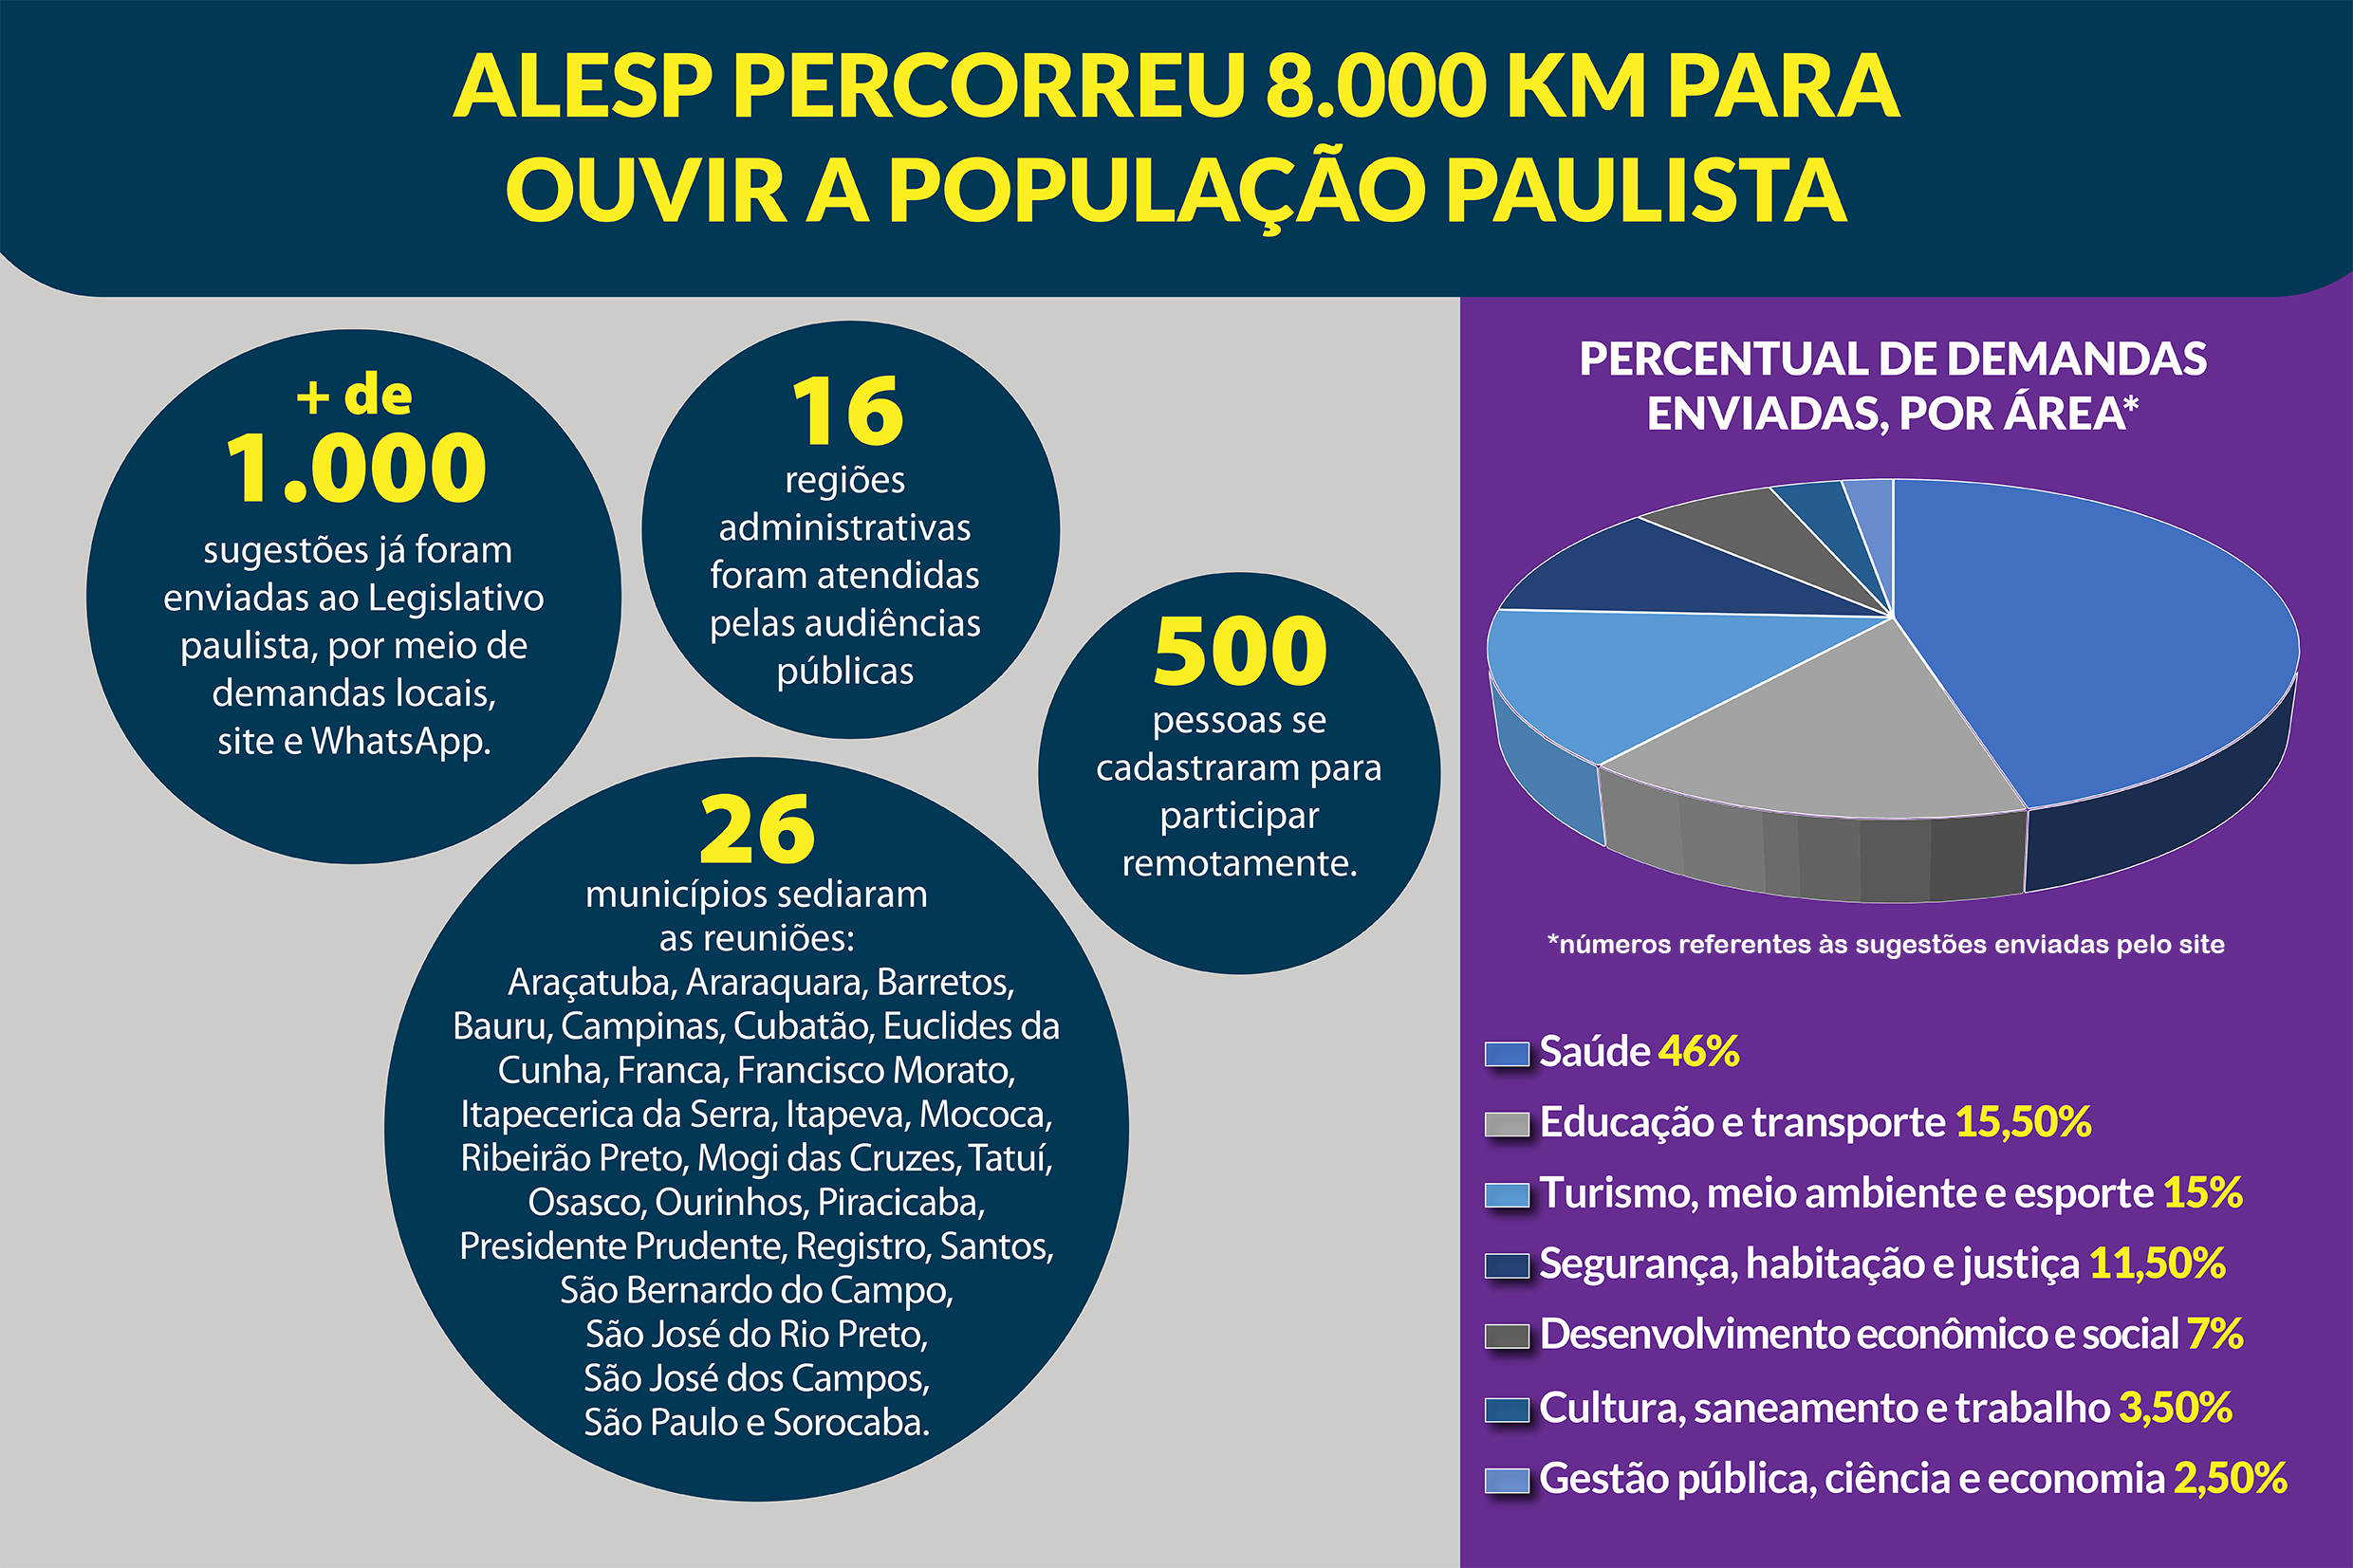 Infográfico<a style='float:right' href='https://www3.al.sp.gov.br/repositorio/noticia/N-10-2021/fg276099.jpg' target=_blank><img src='/_img/material-file-download-white.png' width='14px' alt='Clique para baixar a imagem'></a>